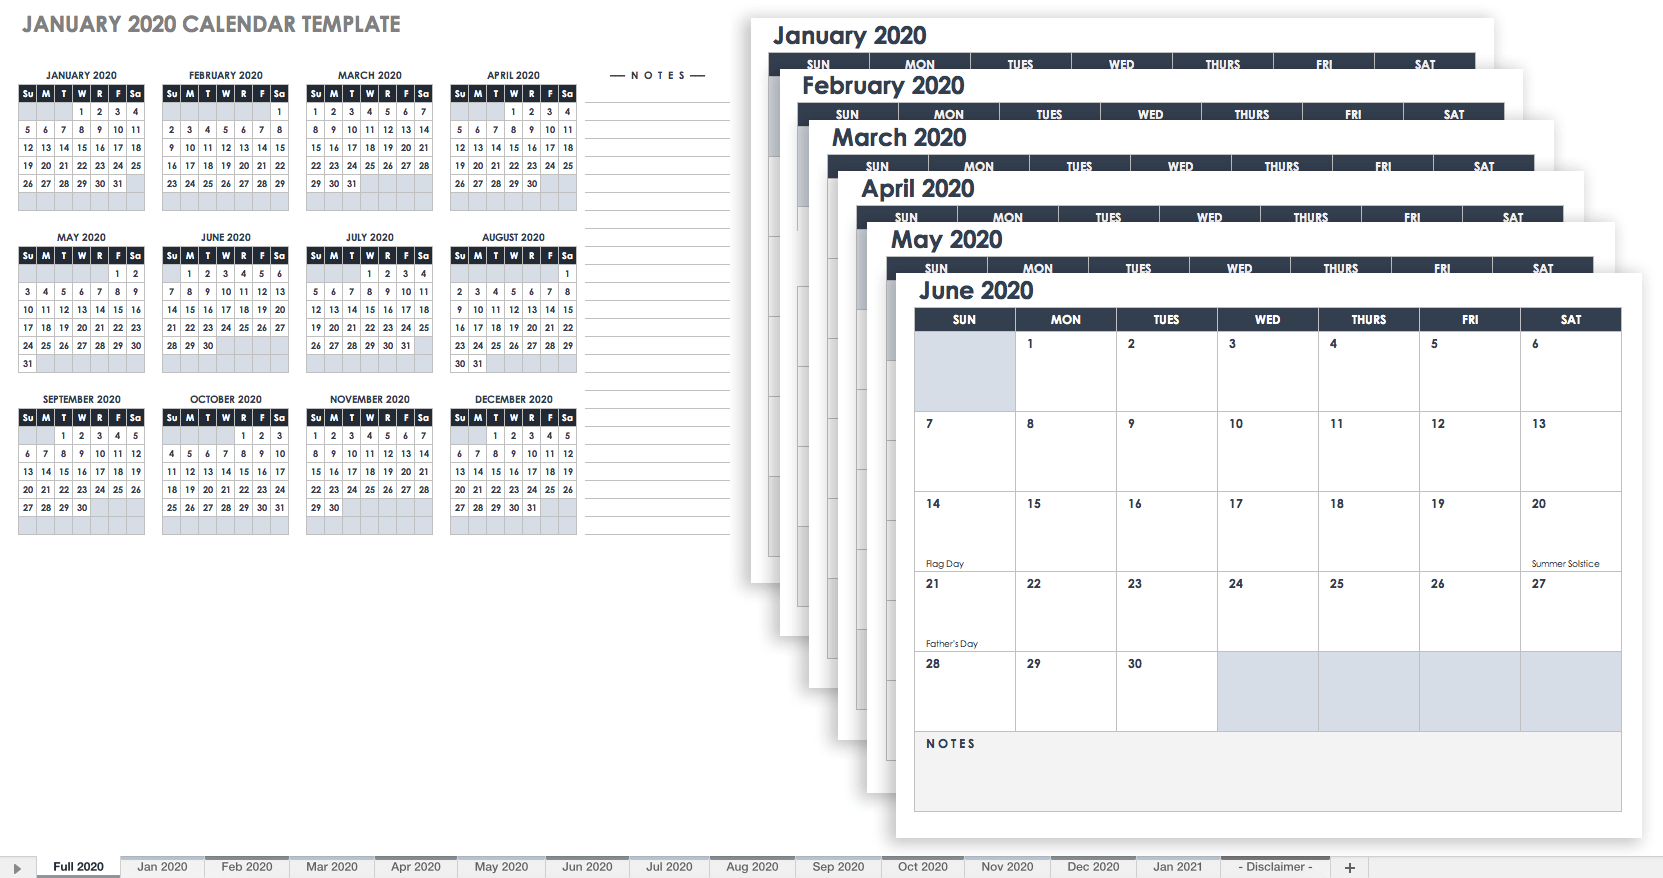 15 Free Monthly Calendar Templates | Smartsheet throughout Print Blank Workday Calendar For August